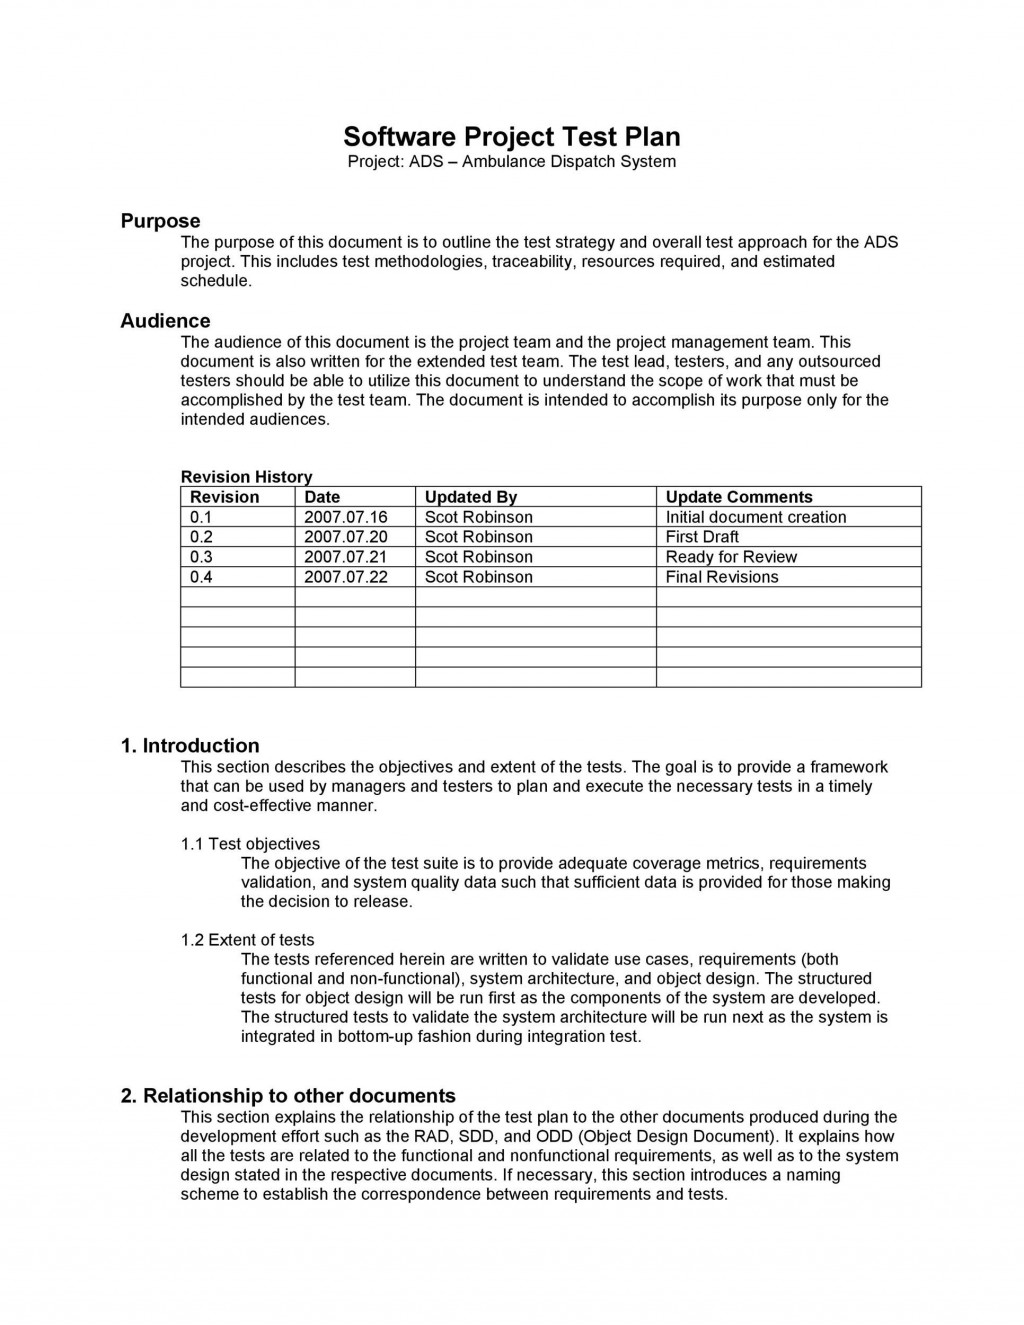 007 Unforgettable Software Testing Plan Template Image  Test Agile Unit Example PdfLarge